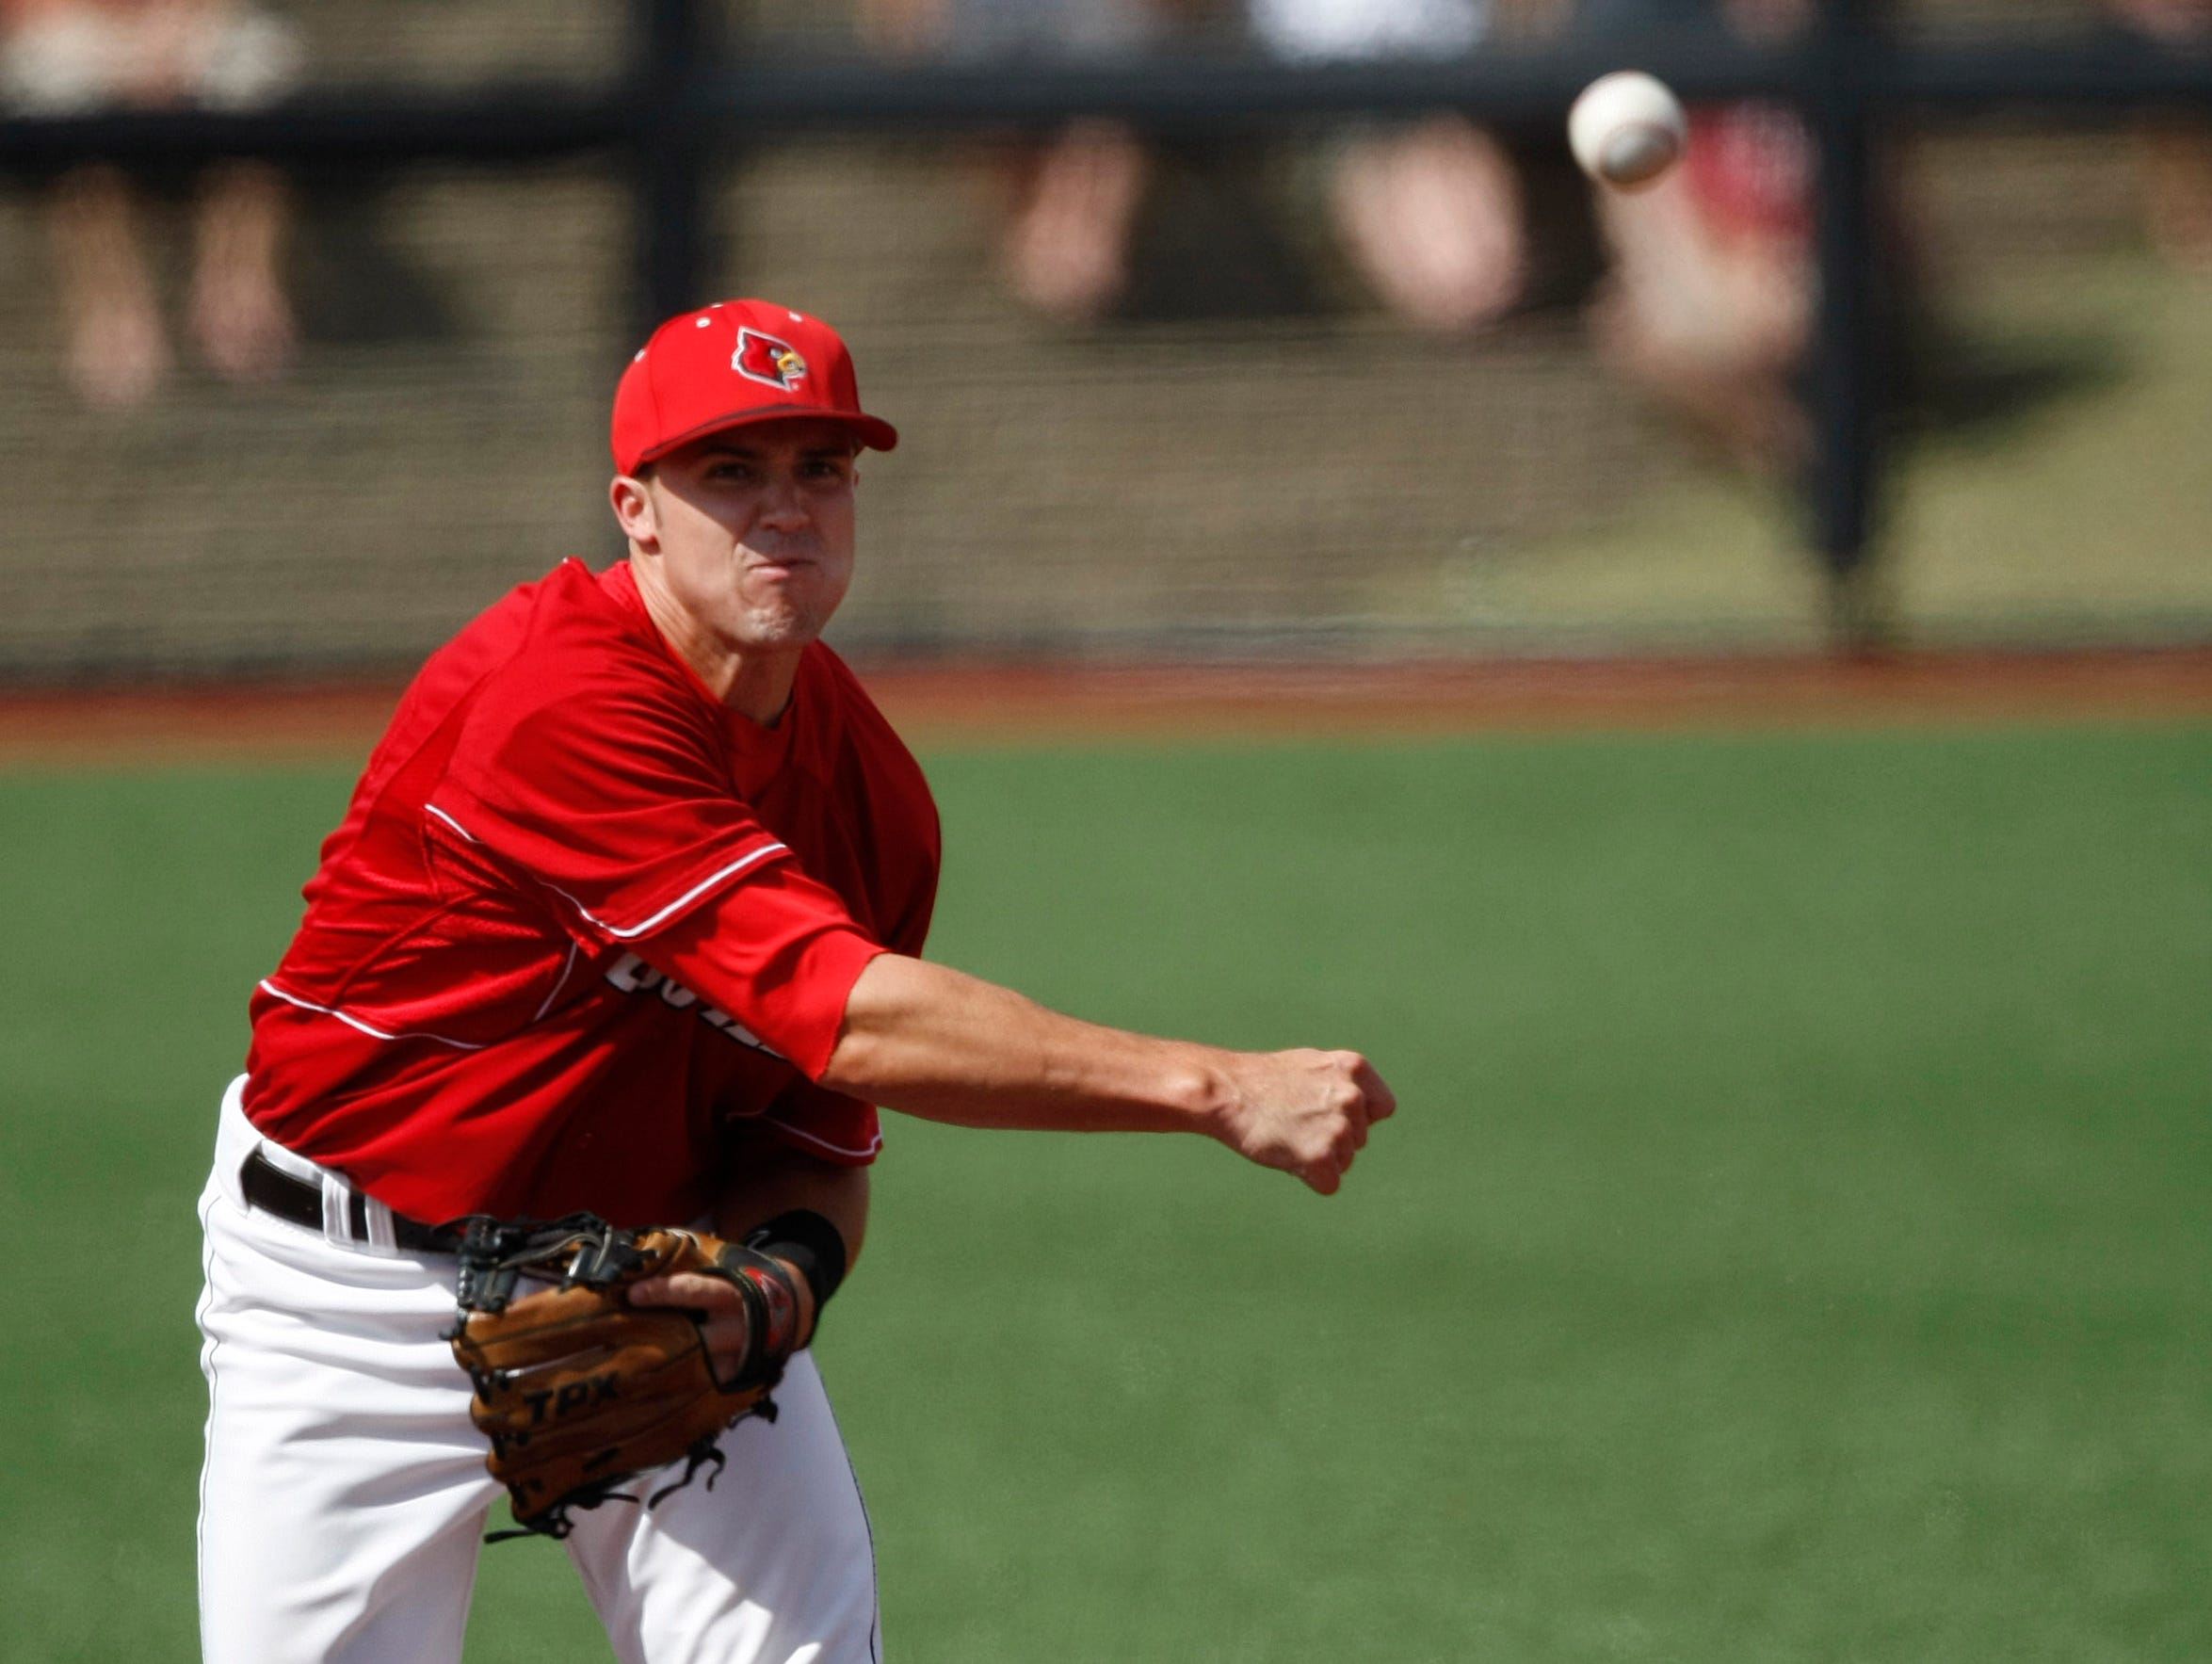 Vanderbilt's Aaron Westlake is forced out at second